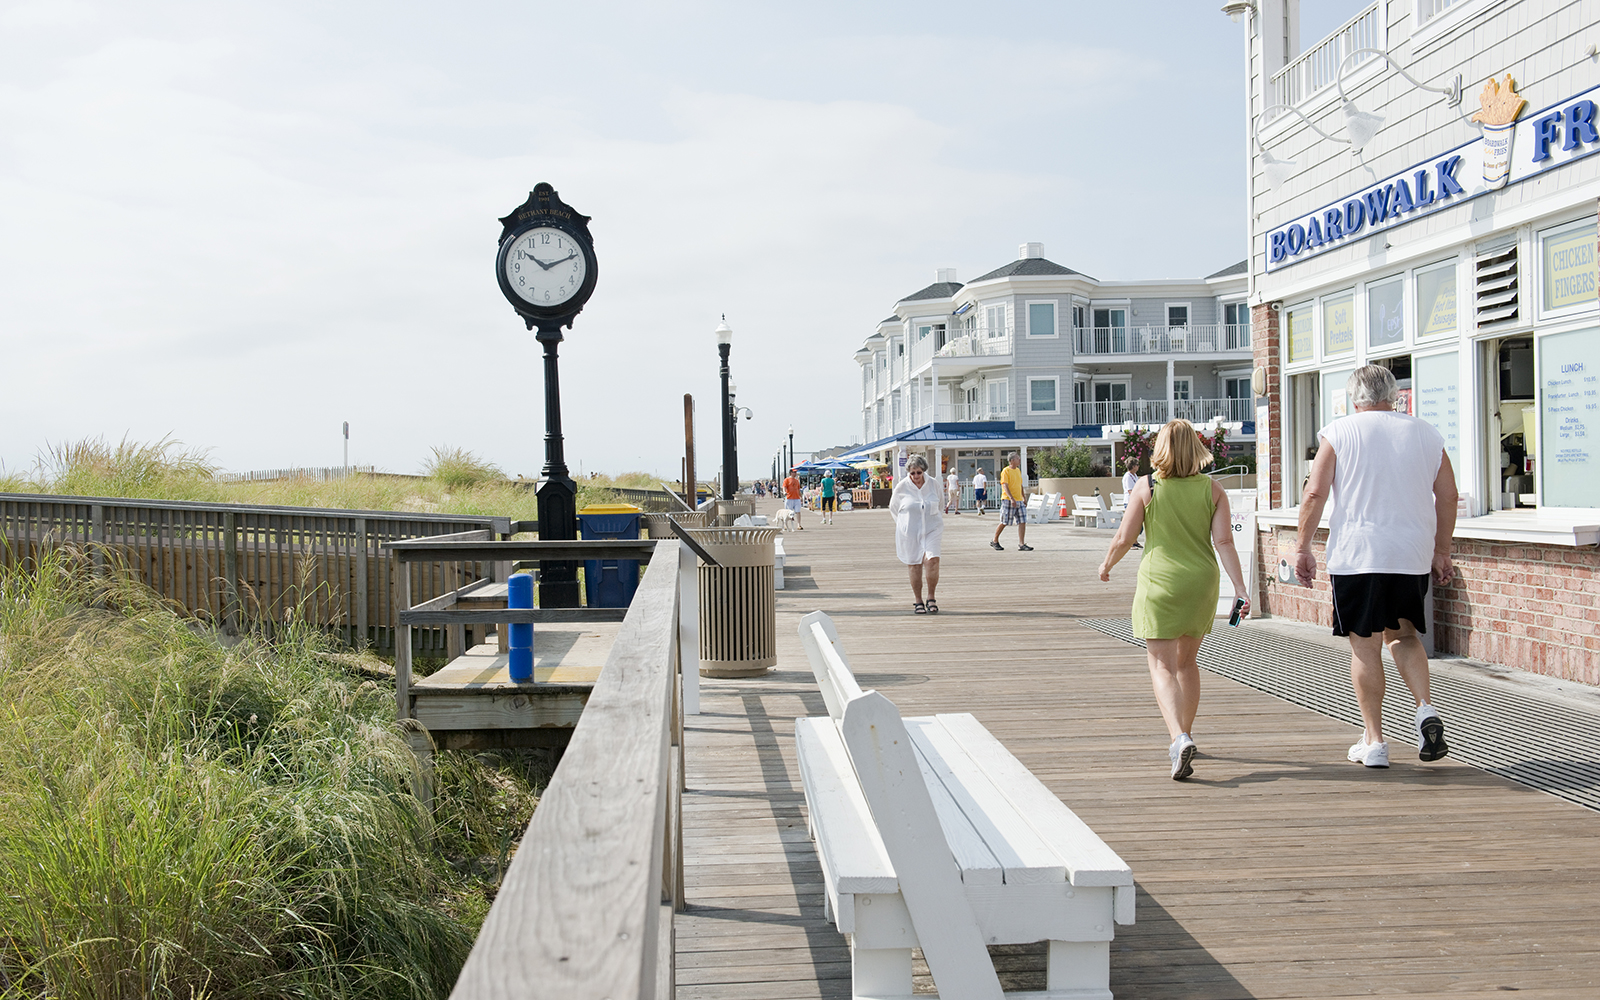 Bethany Beach, Delaware, USA, August 21, 2014: Beach visitors enjoying walks on the boardwalk in late August